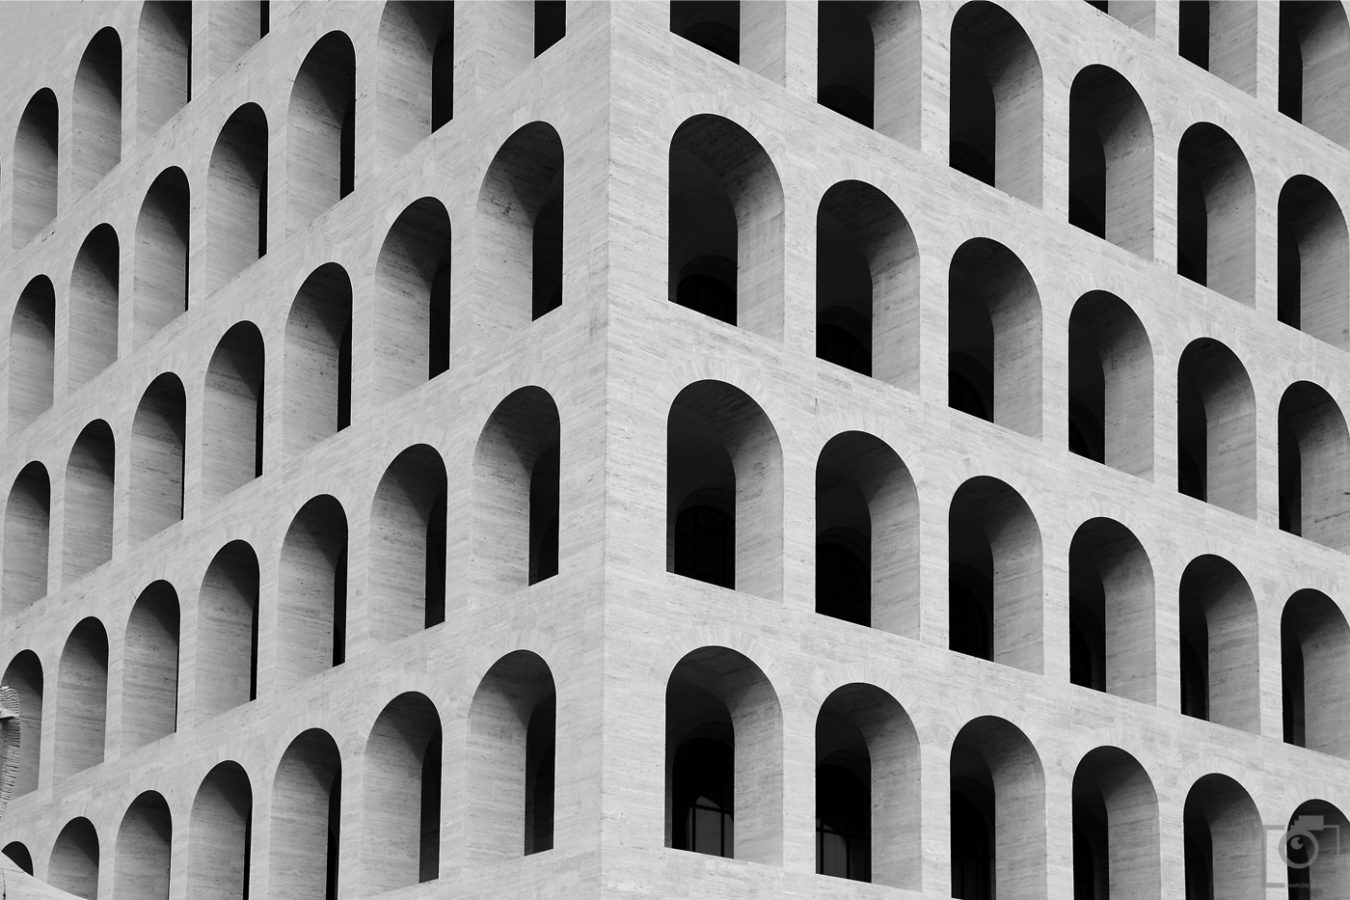 Square Colosseum Rome - Architecture Photography